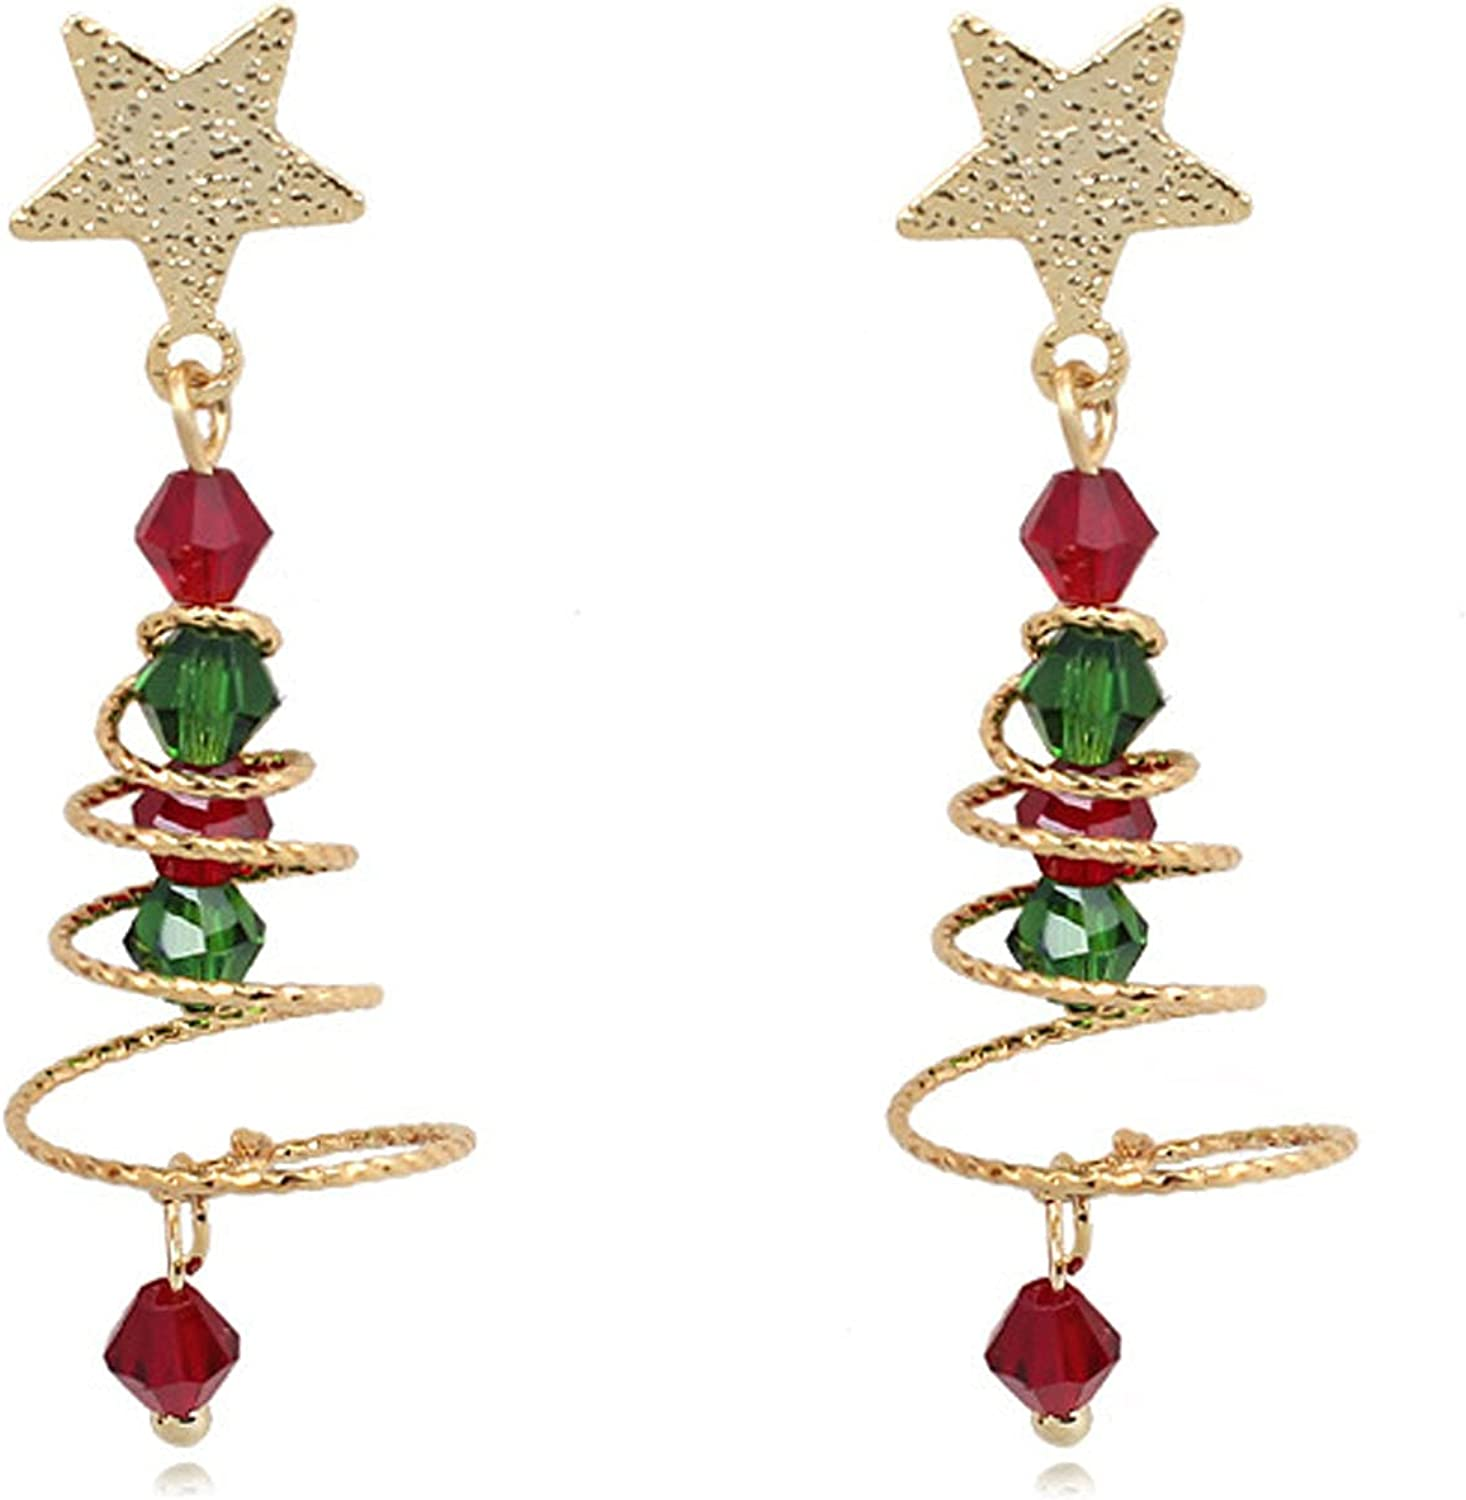 Clip on Earrings Christmas Tree Colorful Bead Spiral Dangle Earring for Women Crystal No Pierced for Girls 2021